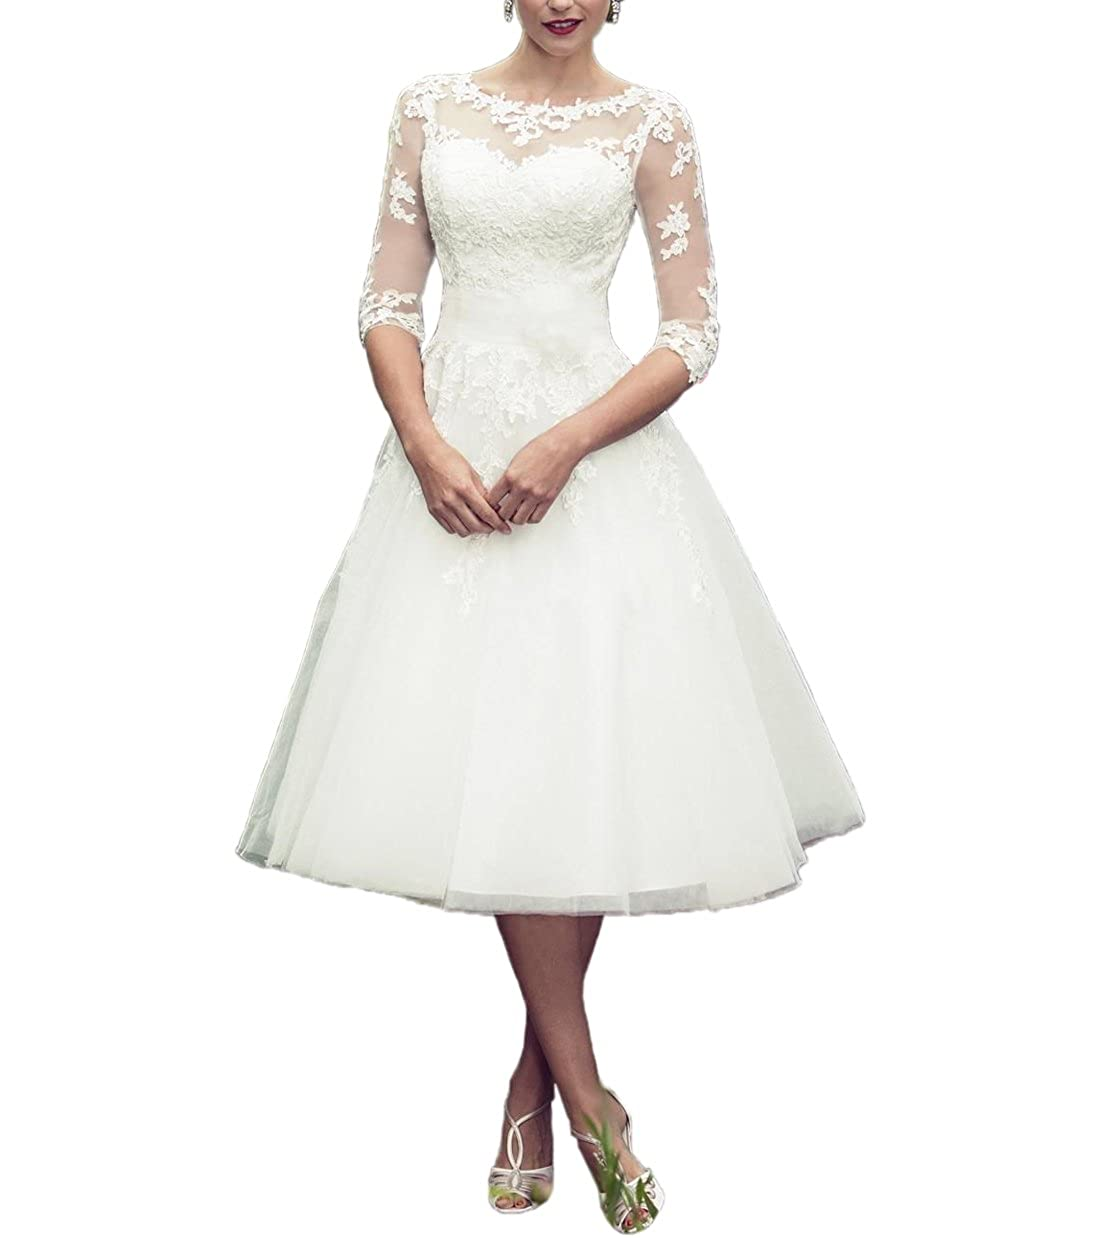 Abaowedding Long Sleeves Lace Short Tea Length Wedding Dress Gown At